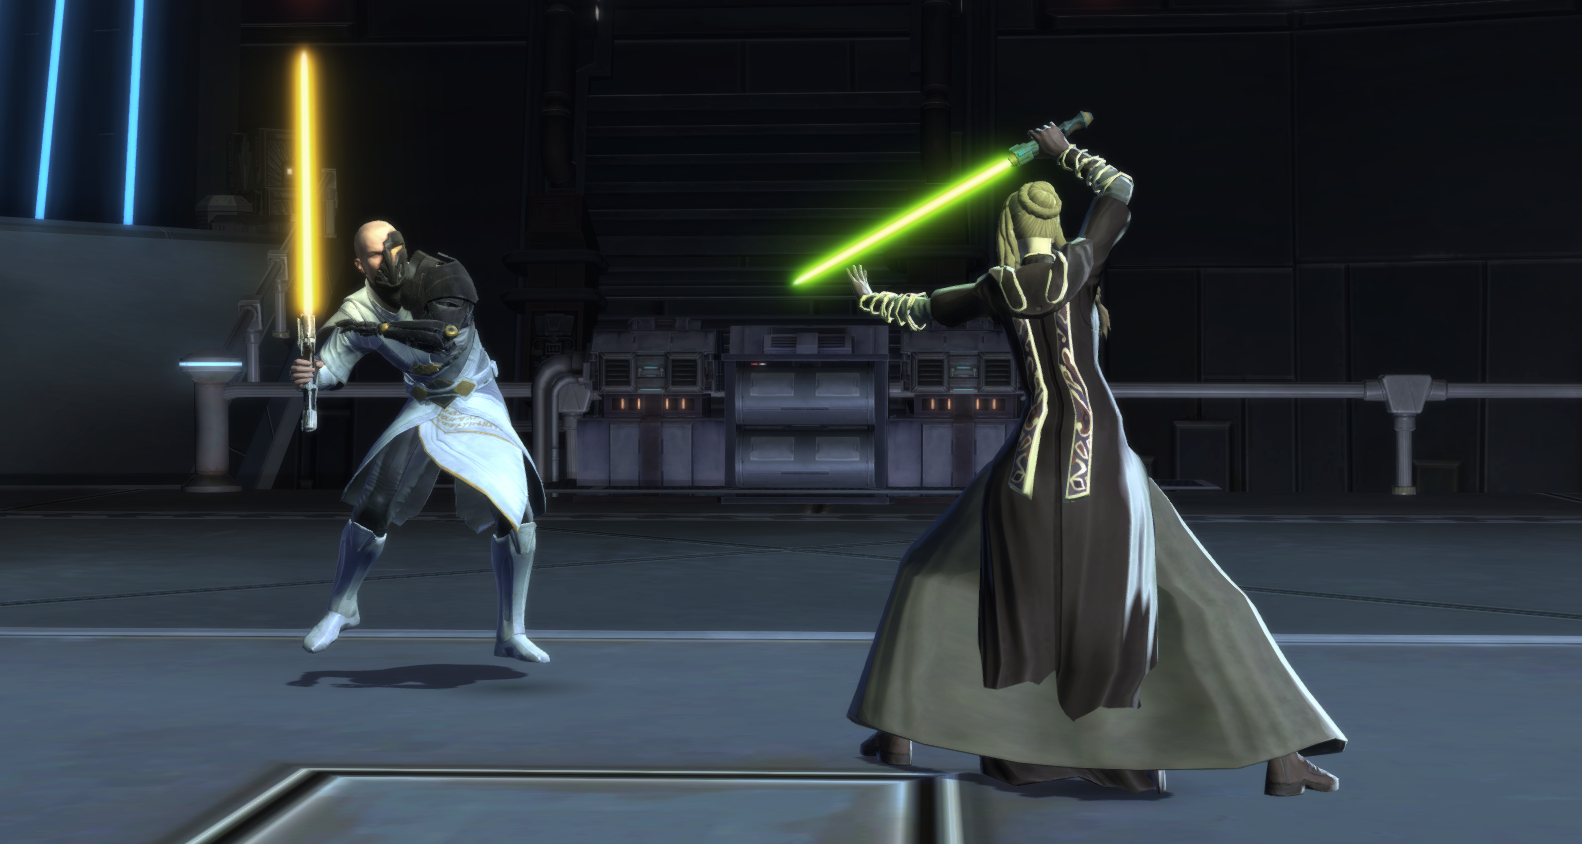 Lightsaber fight in SWTOR